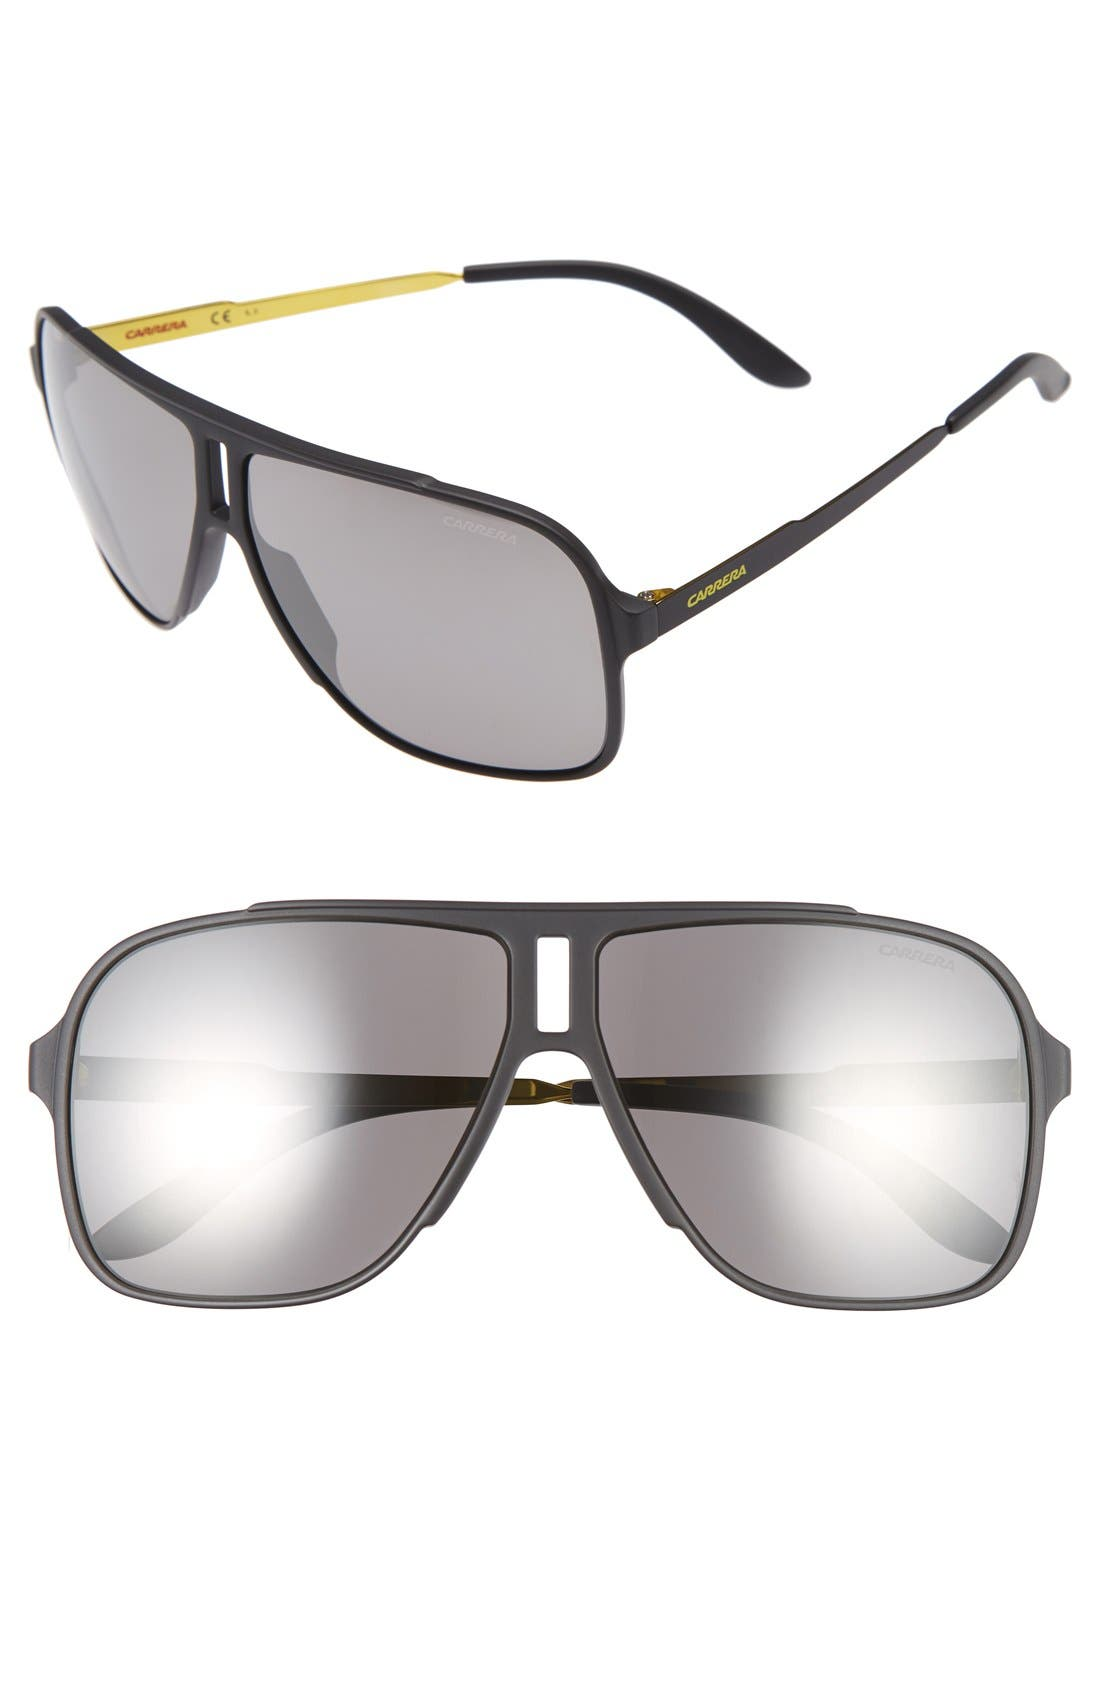 Main Image - Carrera Eyewear 61mm Sunglasses